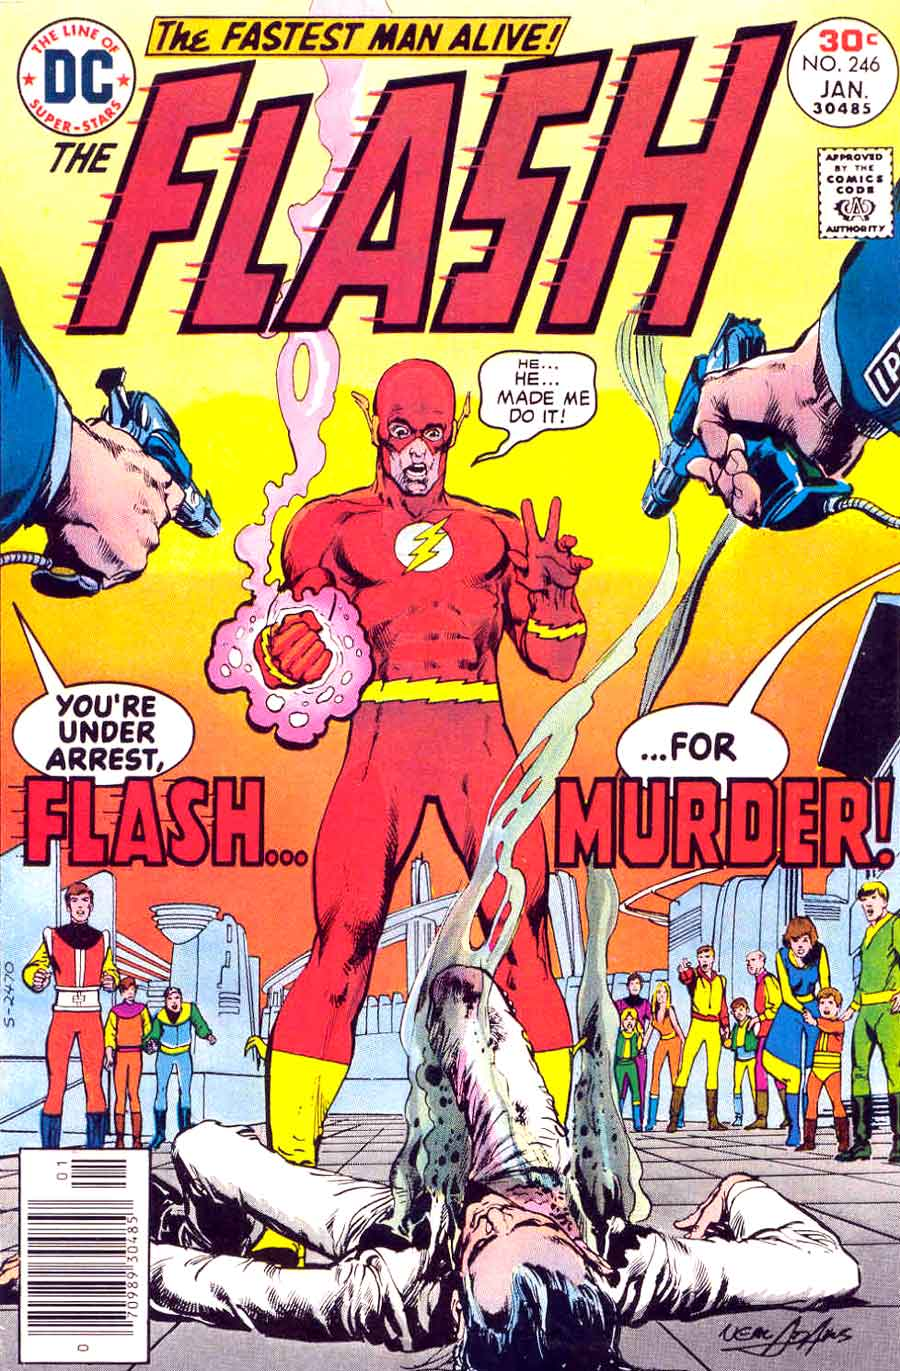 The Flash v1 #246 dc comic book cover art by Neal Adams